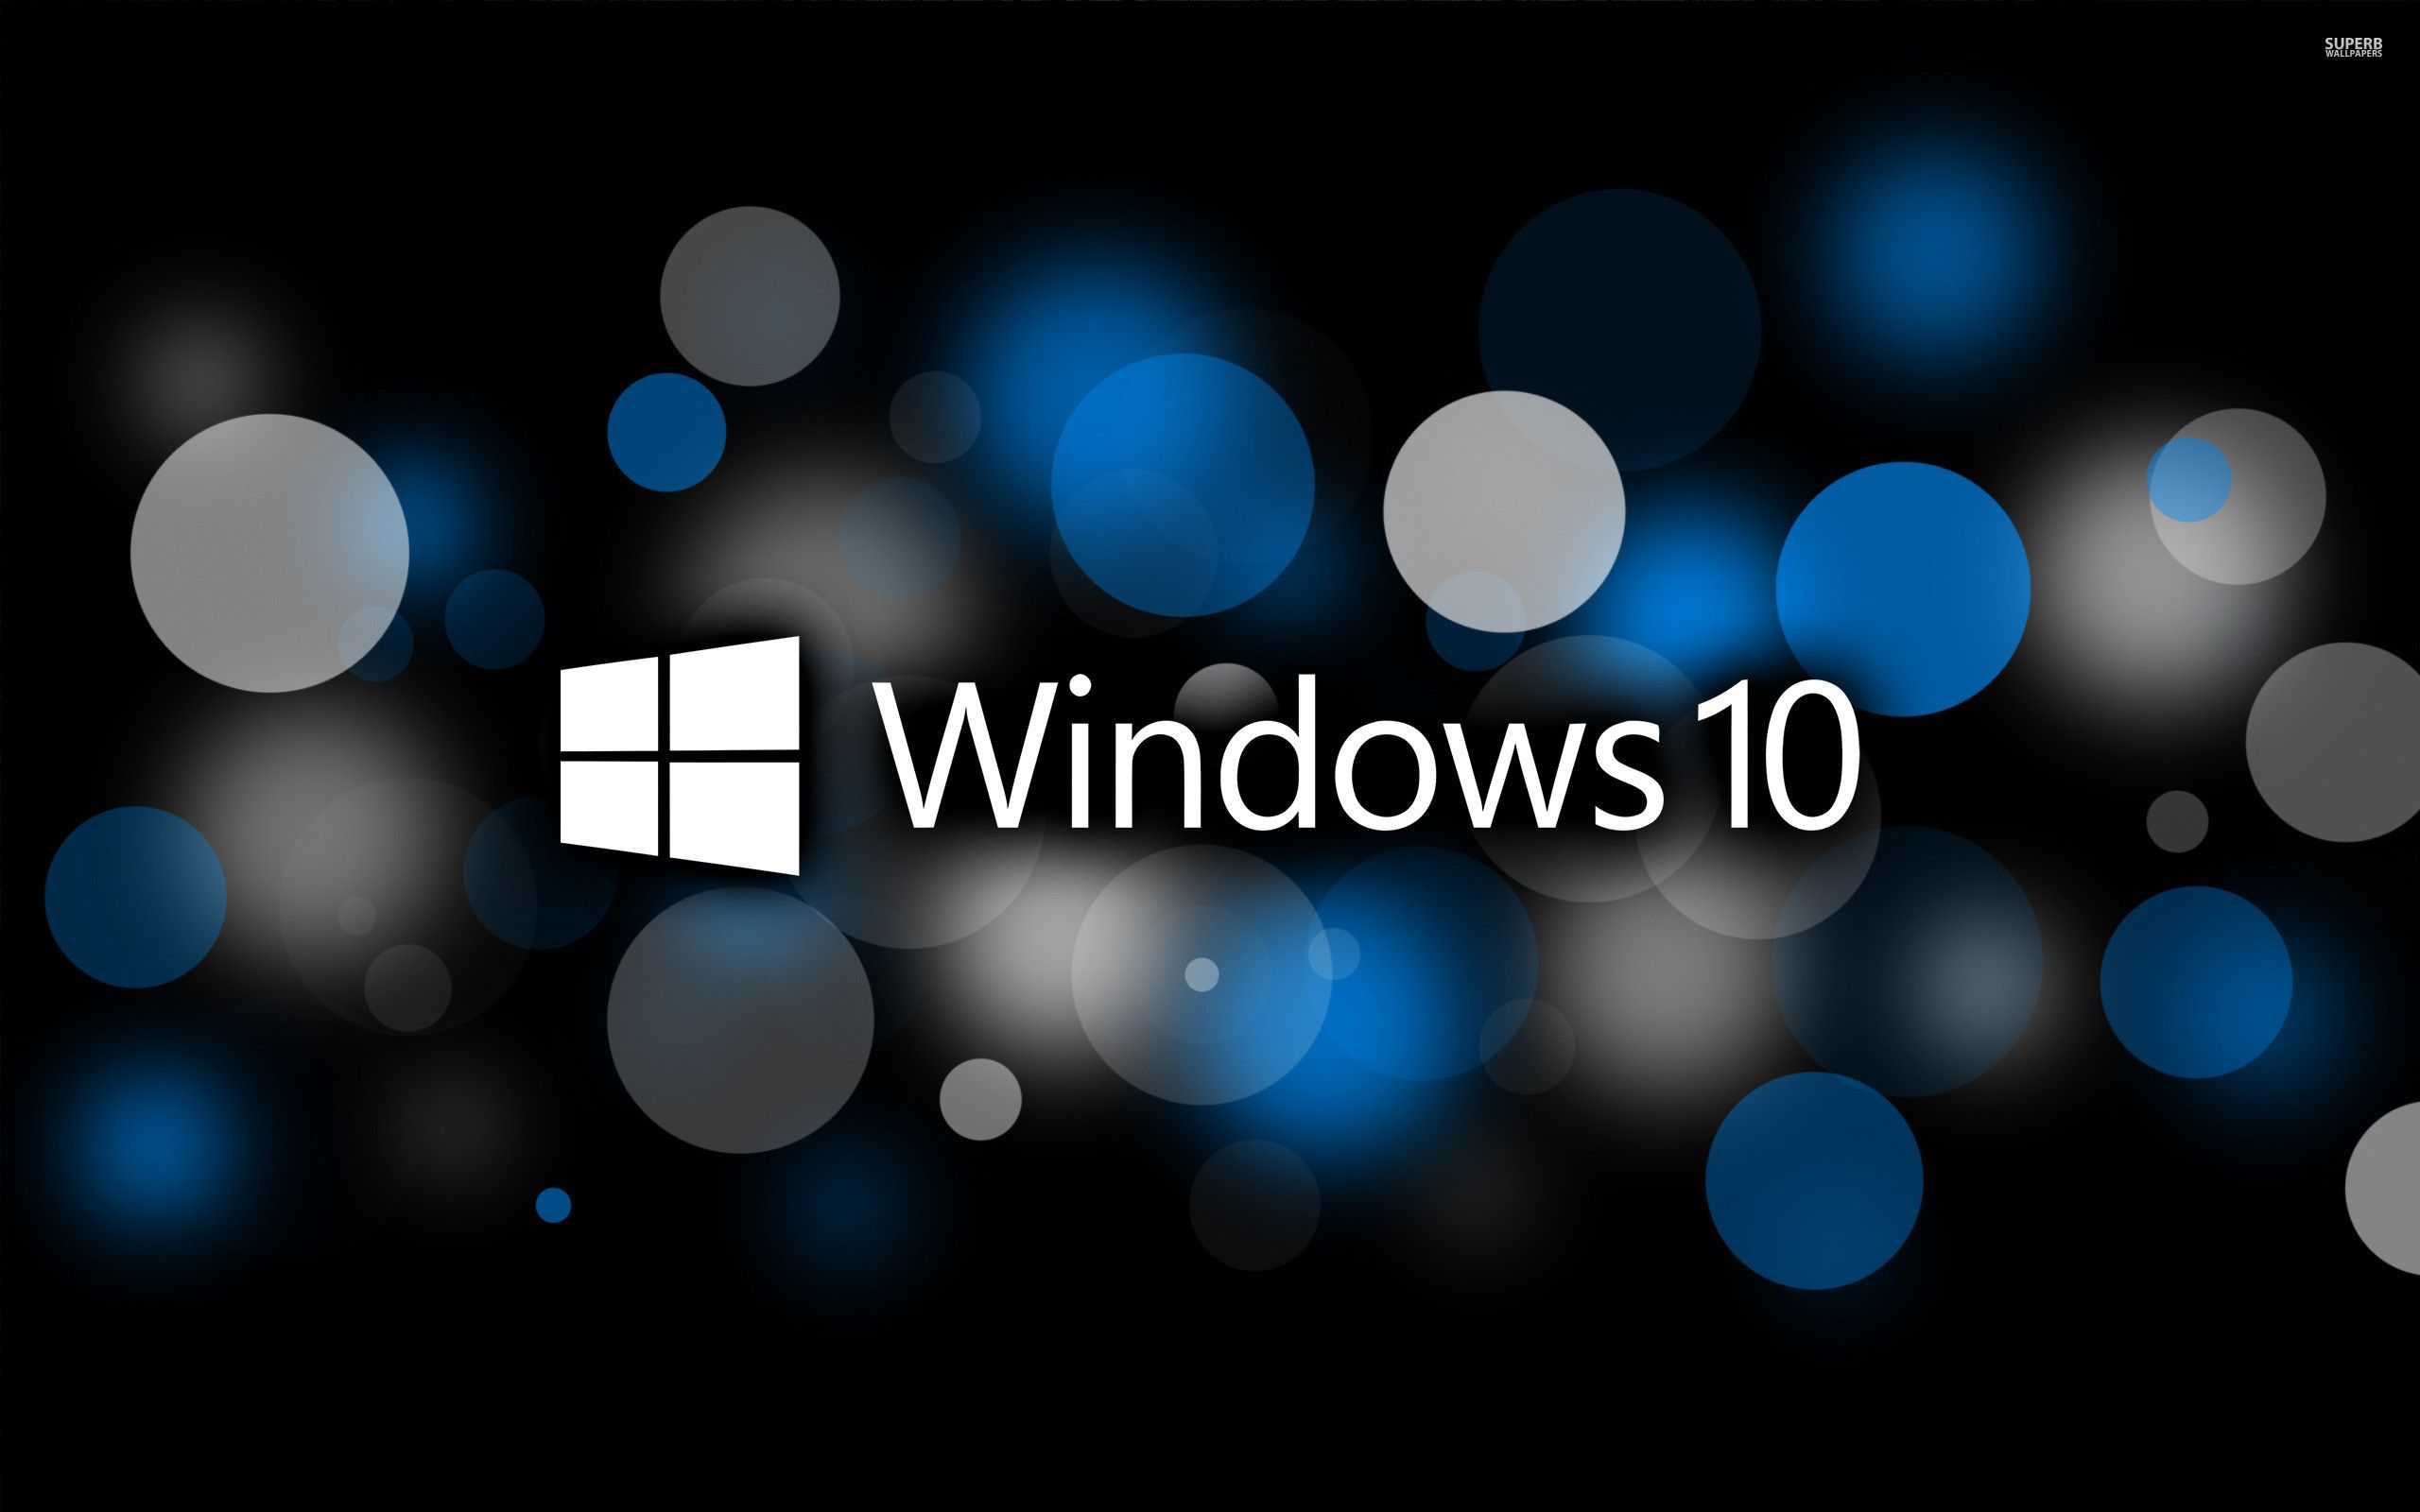 Are you finding the free animated wallpaper windows 10 on online?